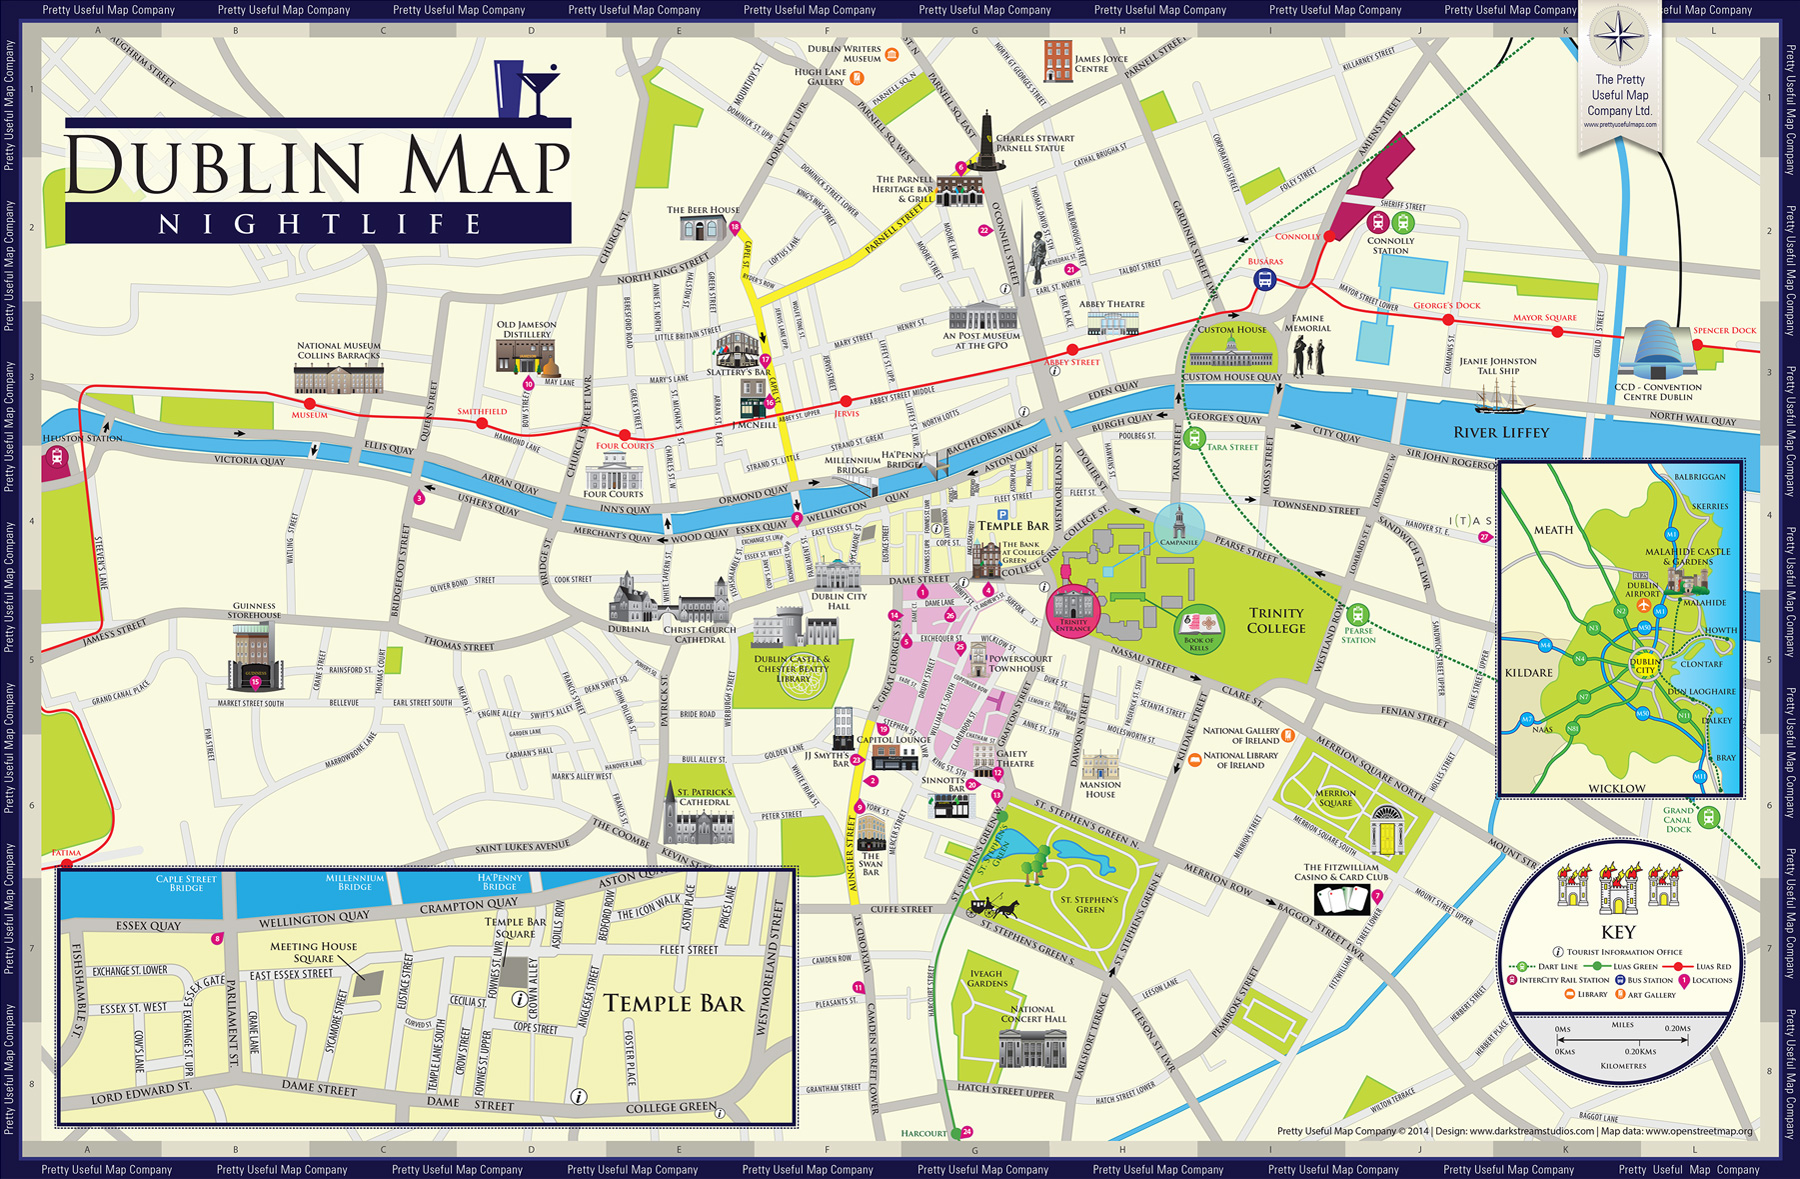 Dublin Nightlife Map